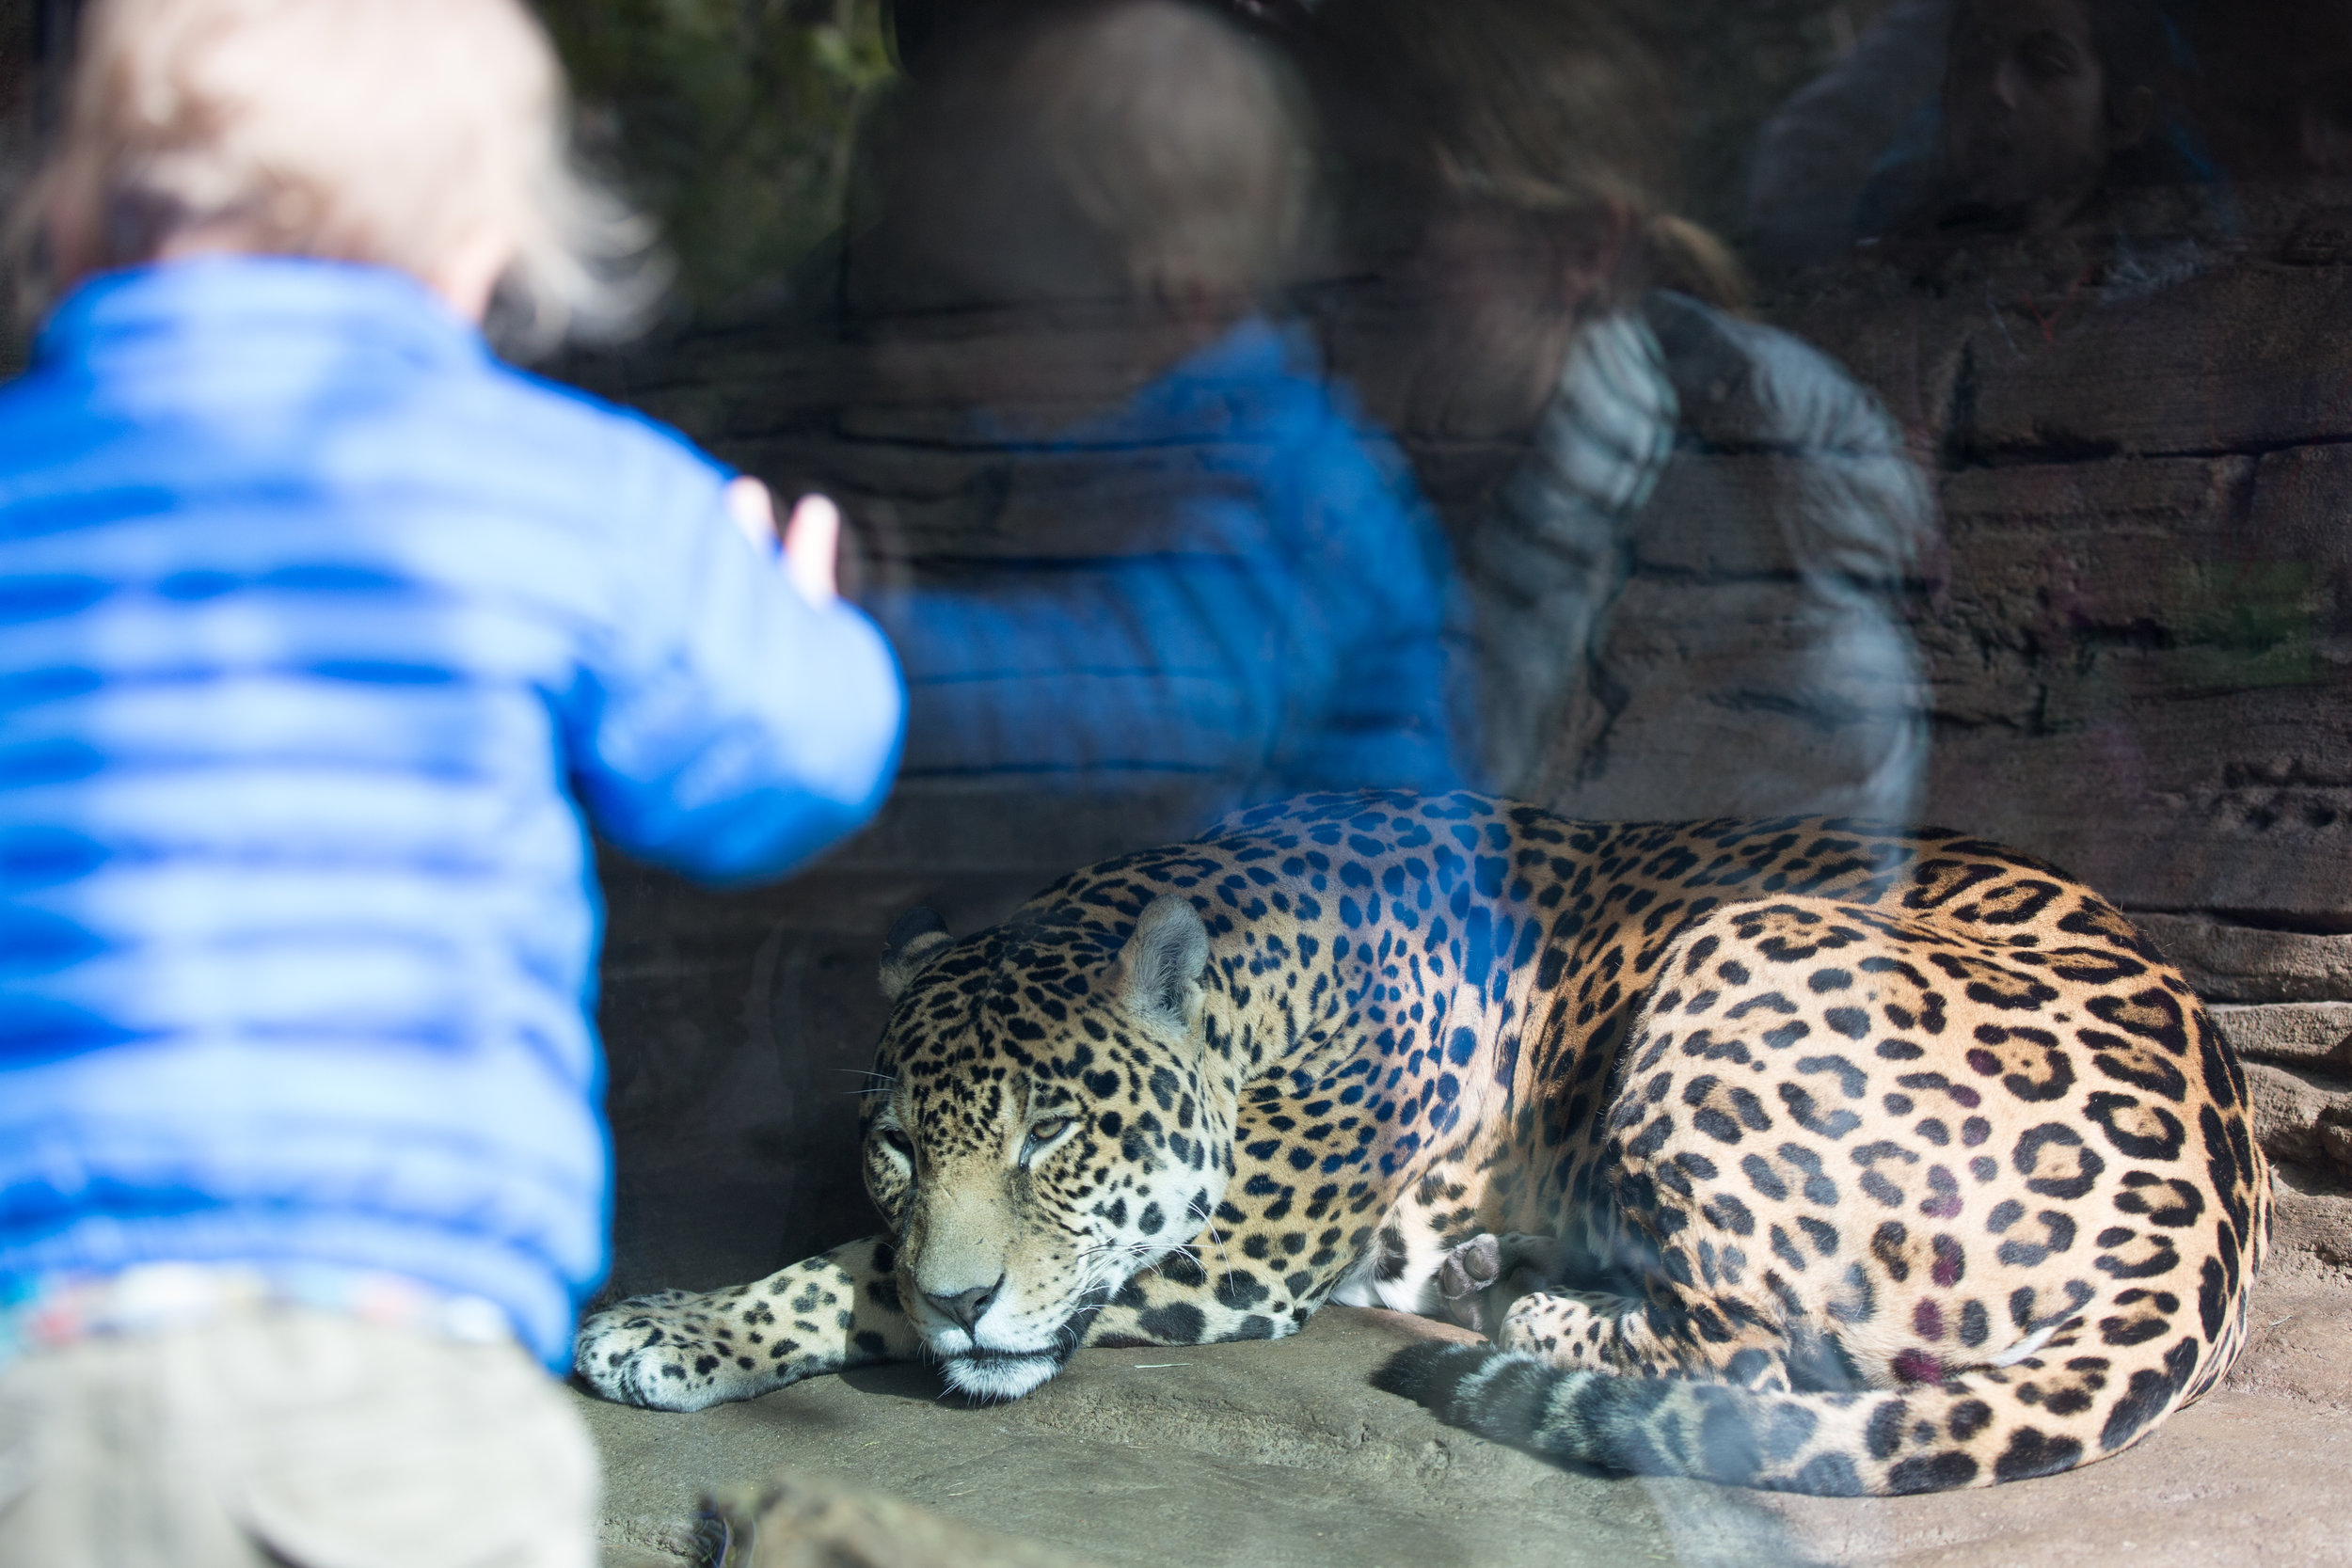 A jaguar relaxes in the Seattle Zoo while children look on.